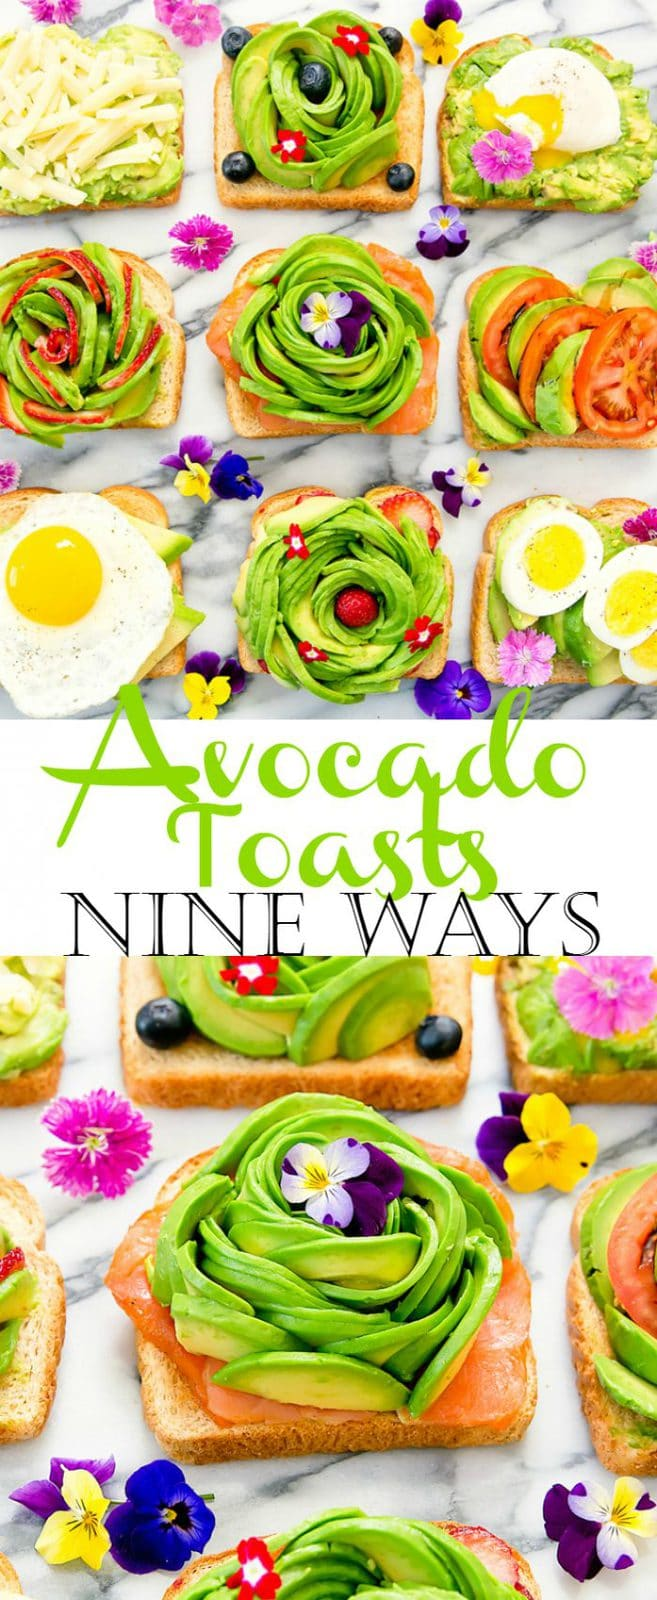 Avocado Roses and Toast Nine Ways